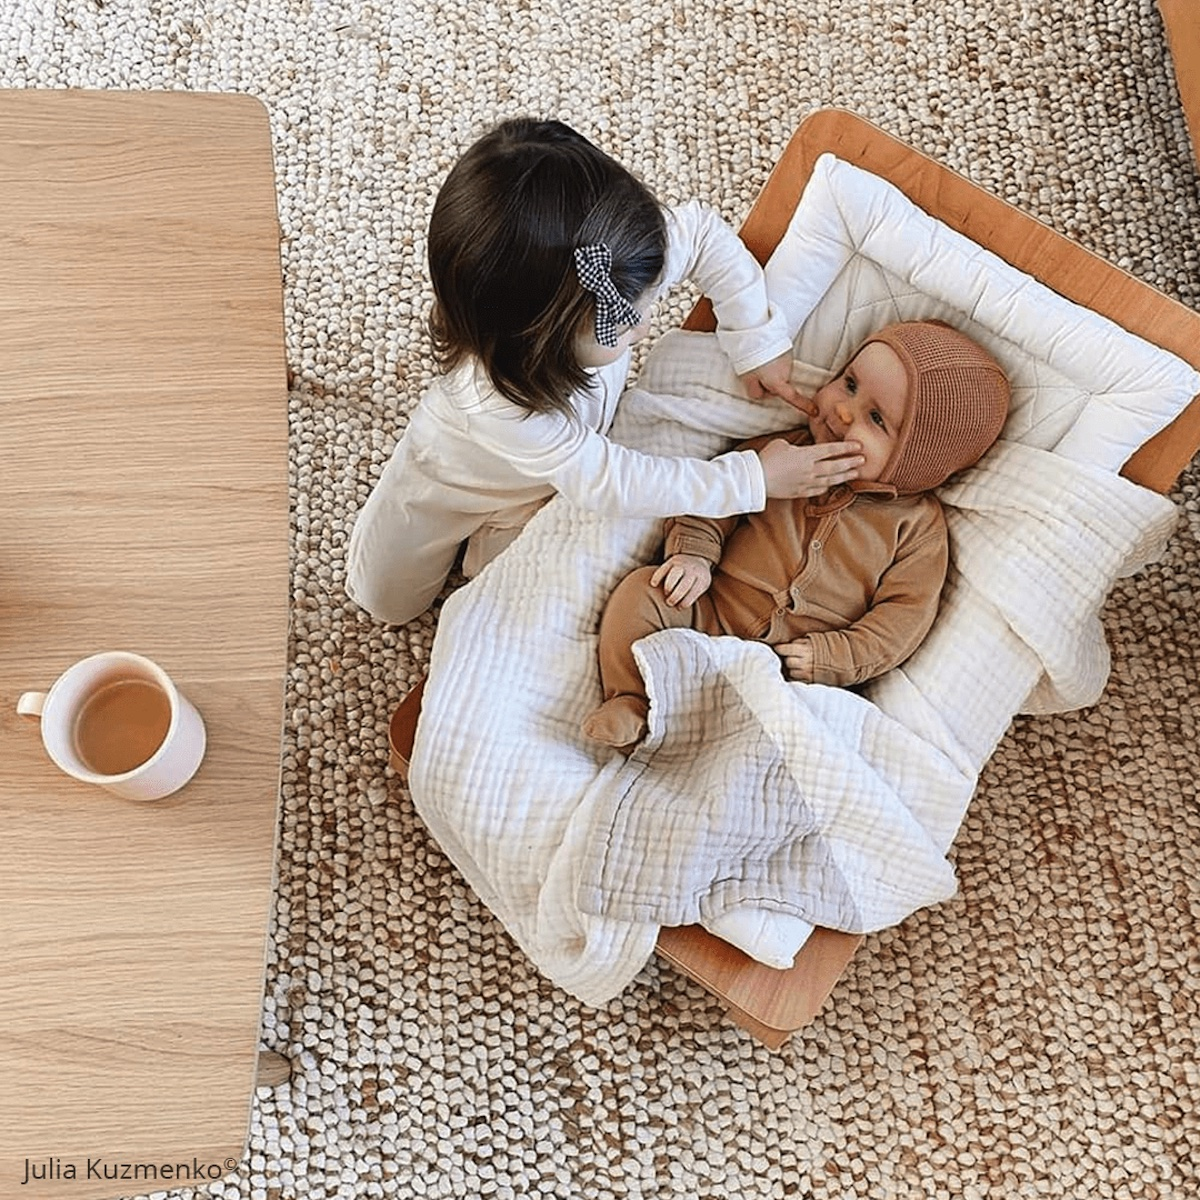 A young girl tending to her infant sibling in a Charlie Crane rocker next to a coffee table with a cup of tea